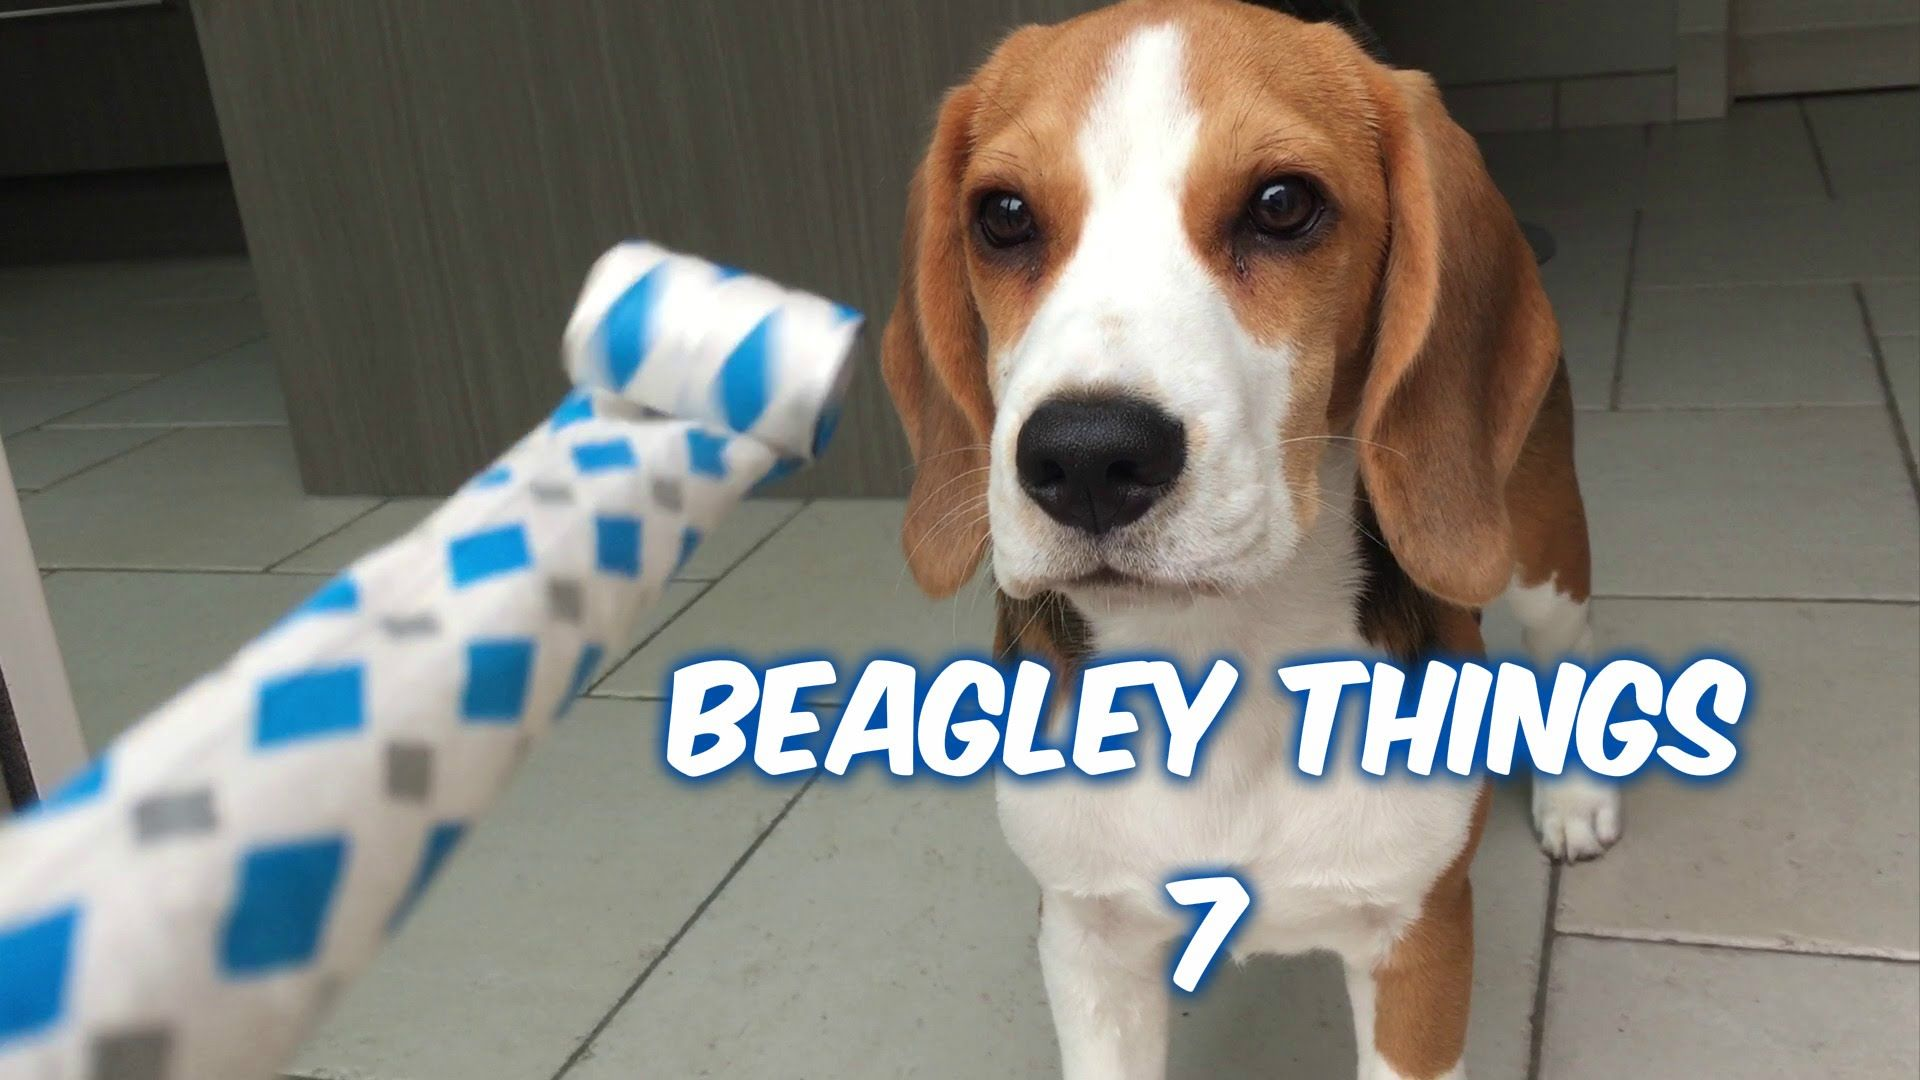 Funny Beagley Things Why You Should Get A Beagle Dog Episode